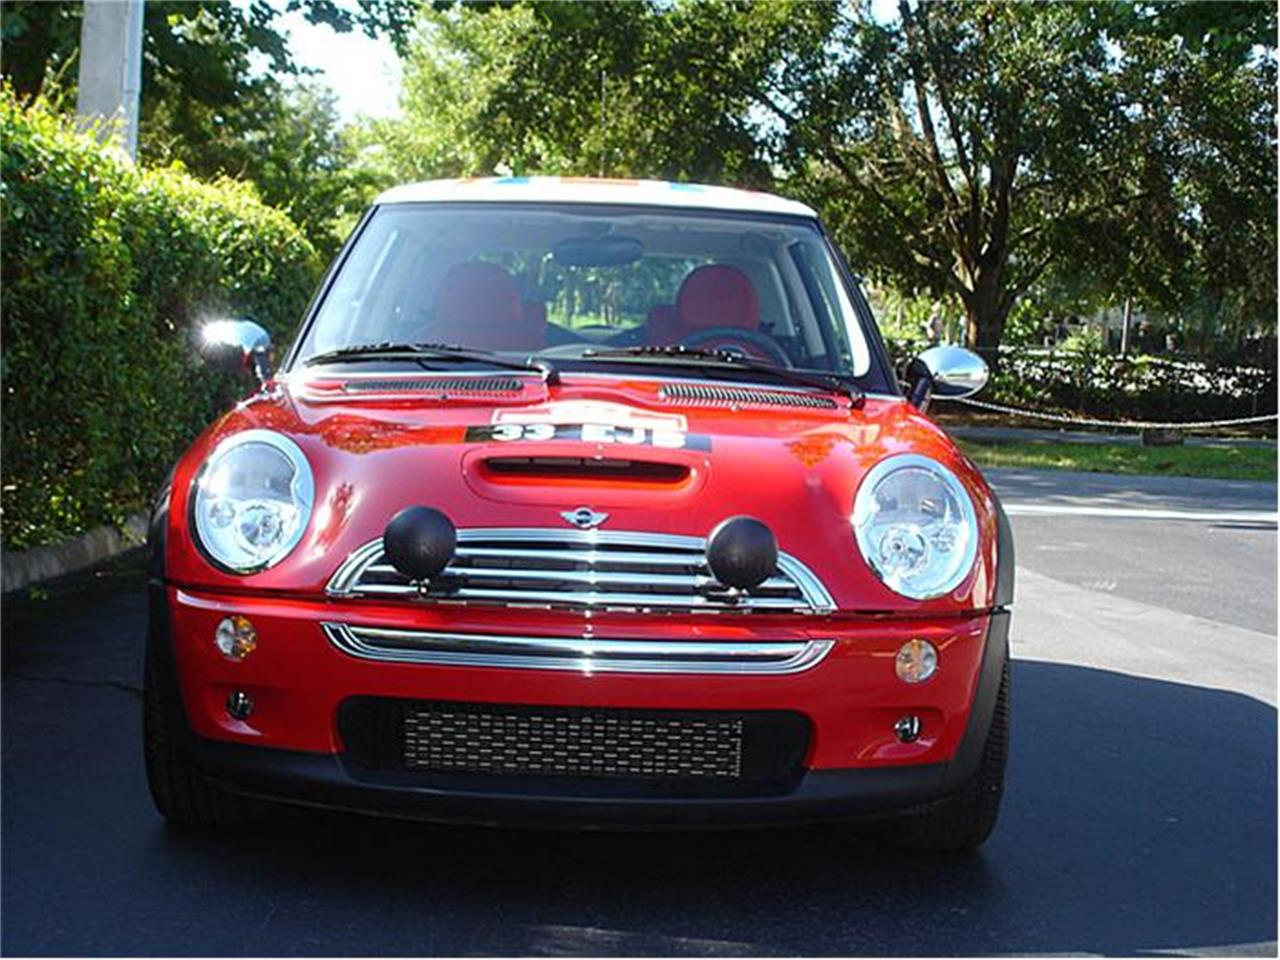 Large Picture of '04 MINI Cooper located in Mount Dora (Orlando) Florida - $27,950.00 Offered by Classic Dreamcars, Inc. - 9J85